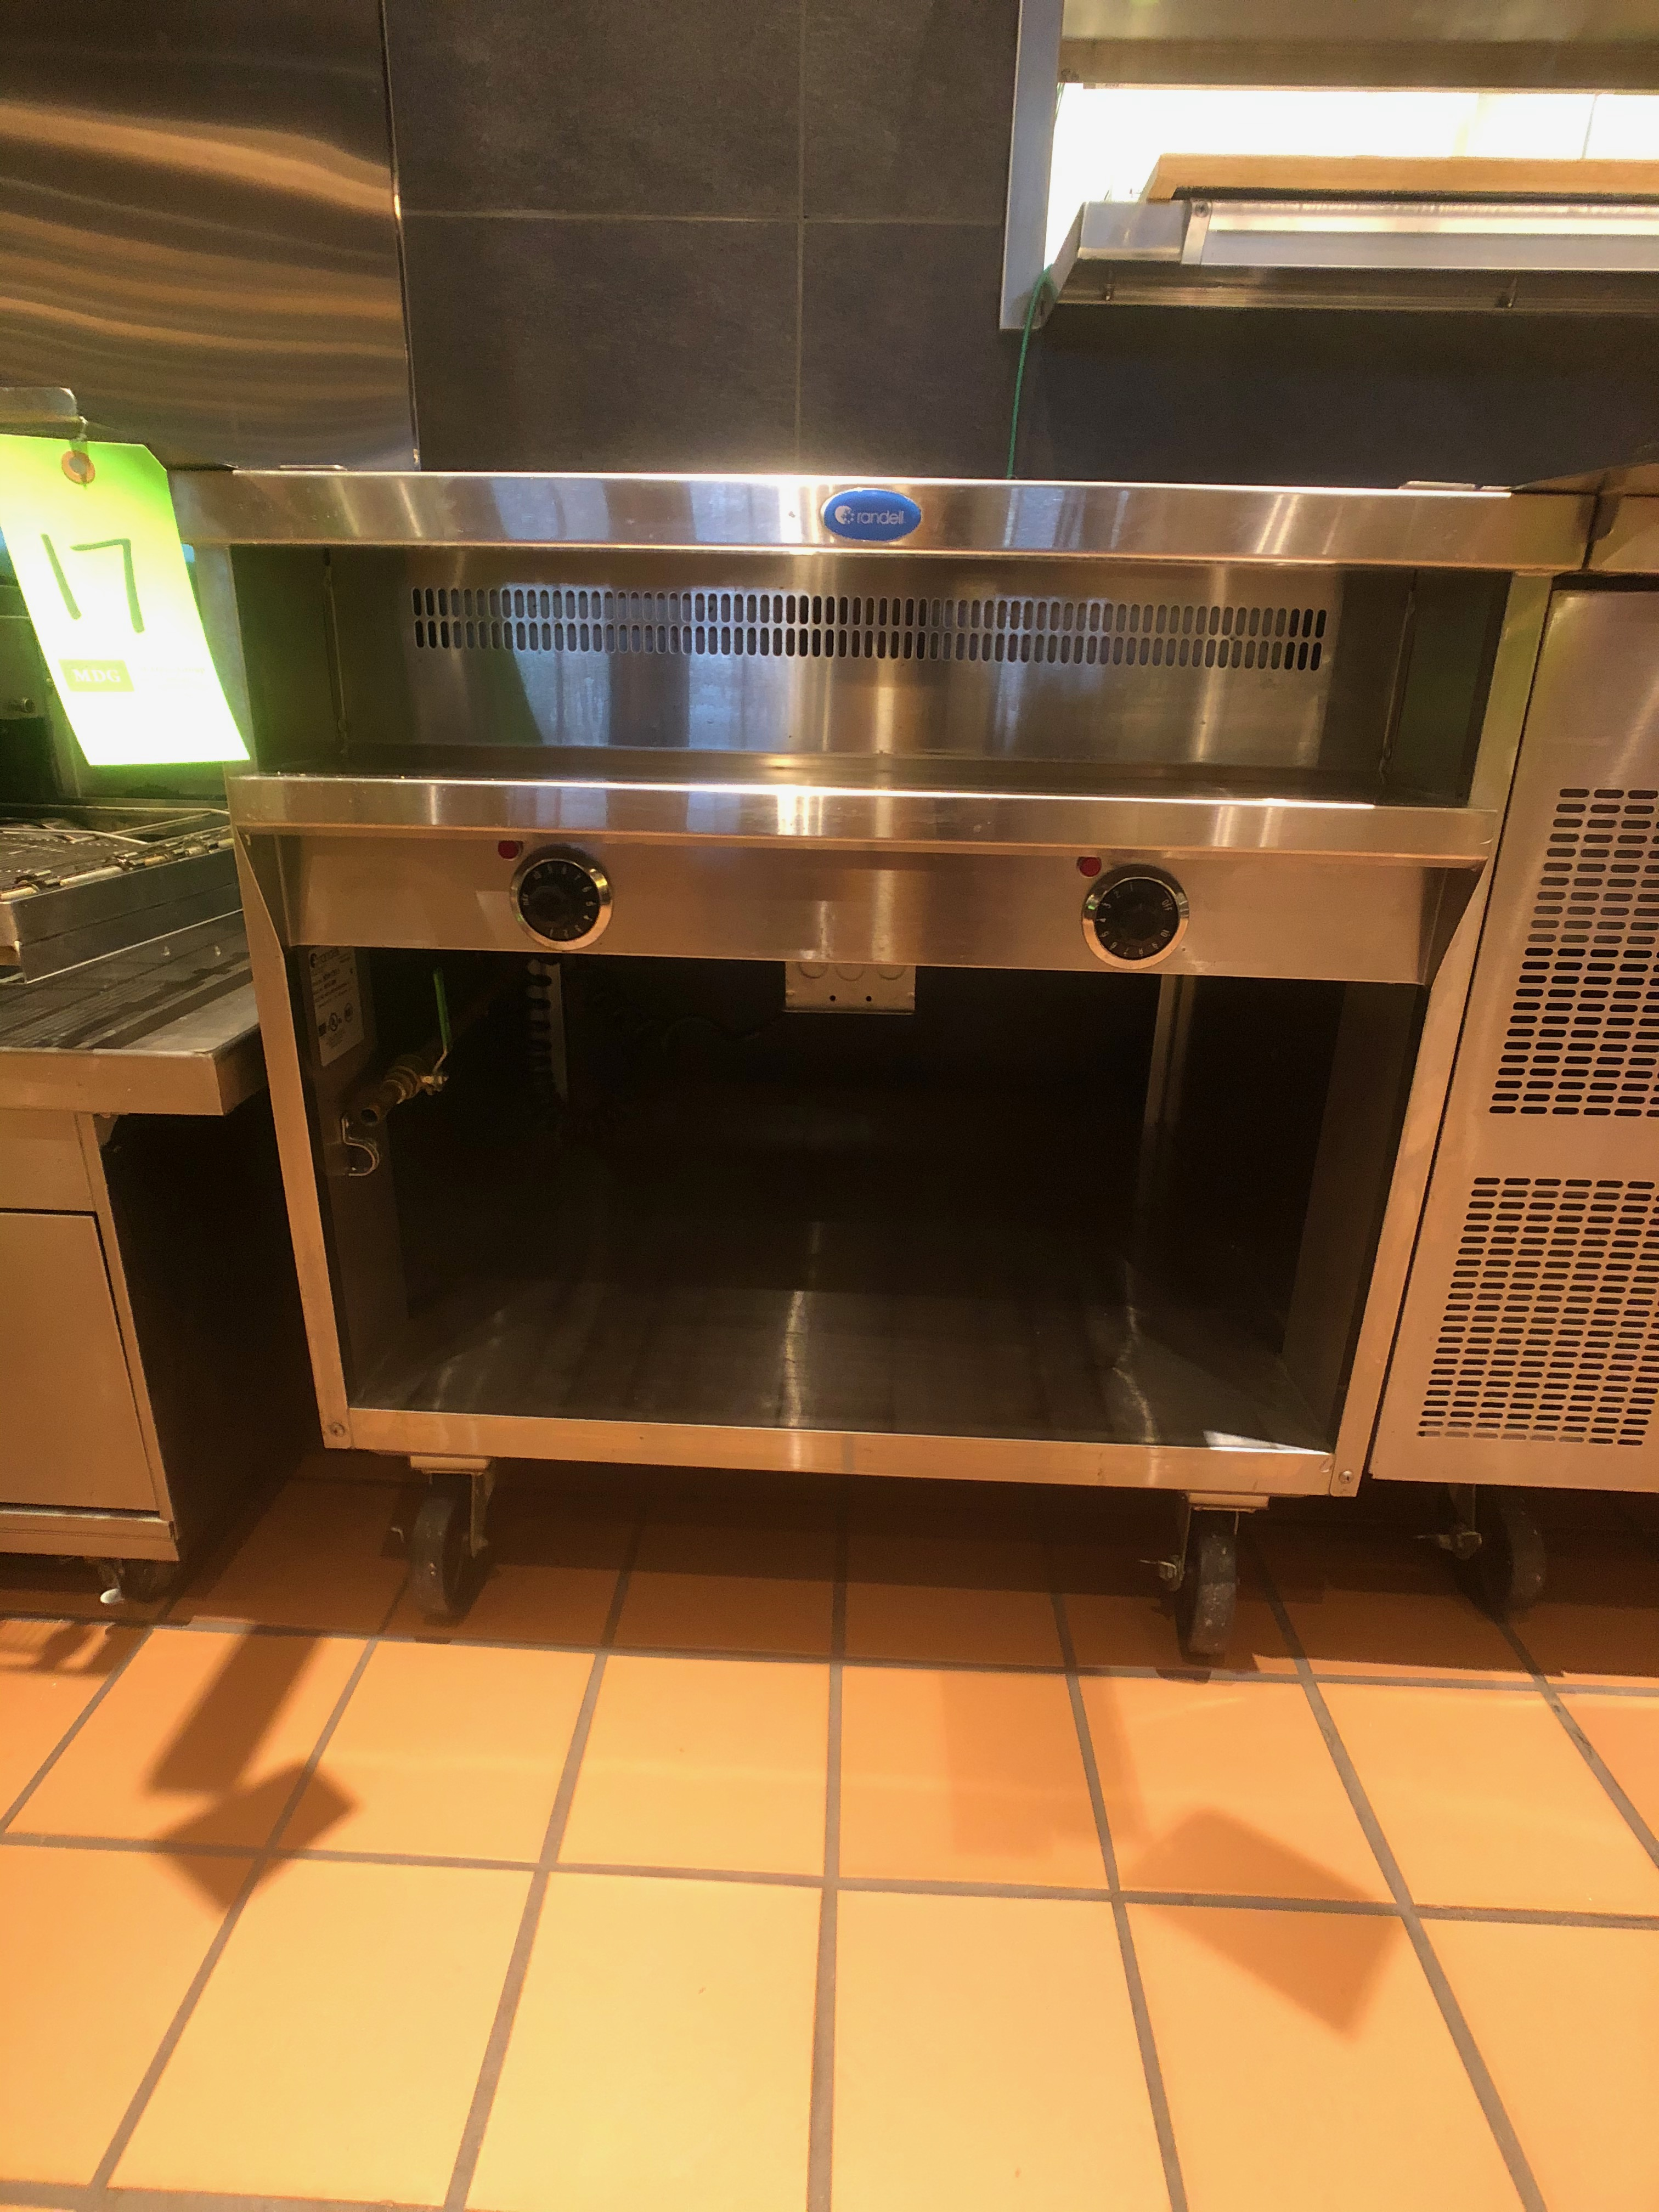 Randell Open Base Electric Hot Food Table, Model 3612-208, S/N W1041763-1, (2) Pan - Image 3 of 6